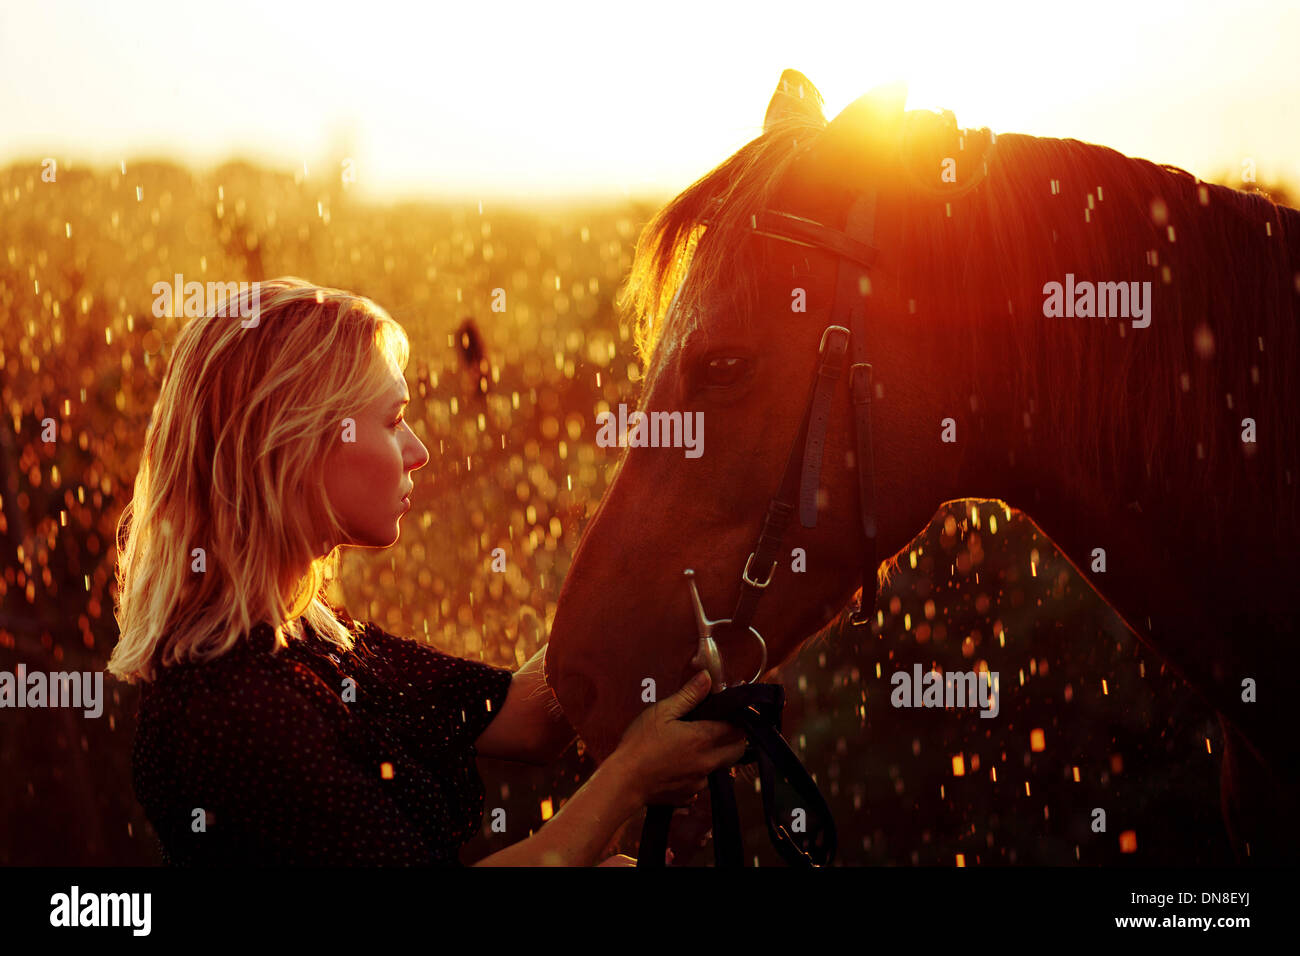 Woman with horse at sunset - Stock Image